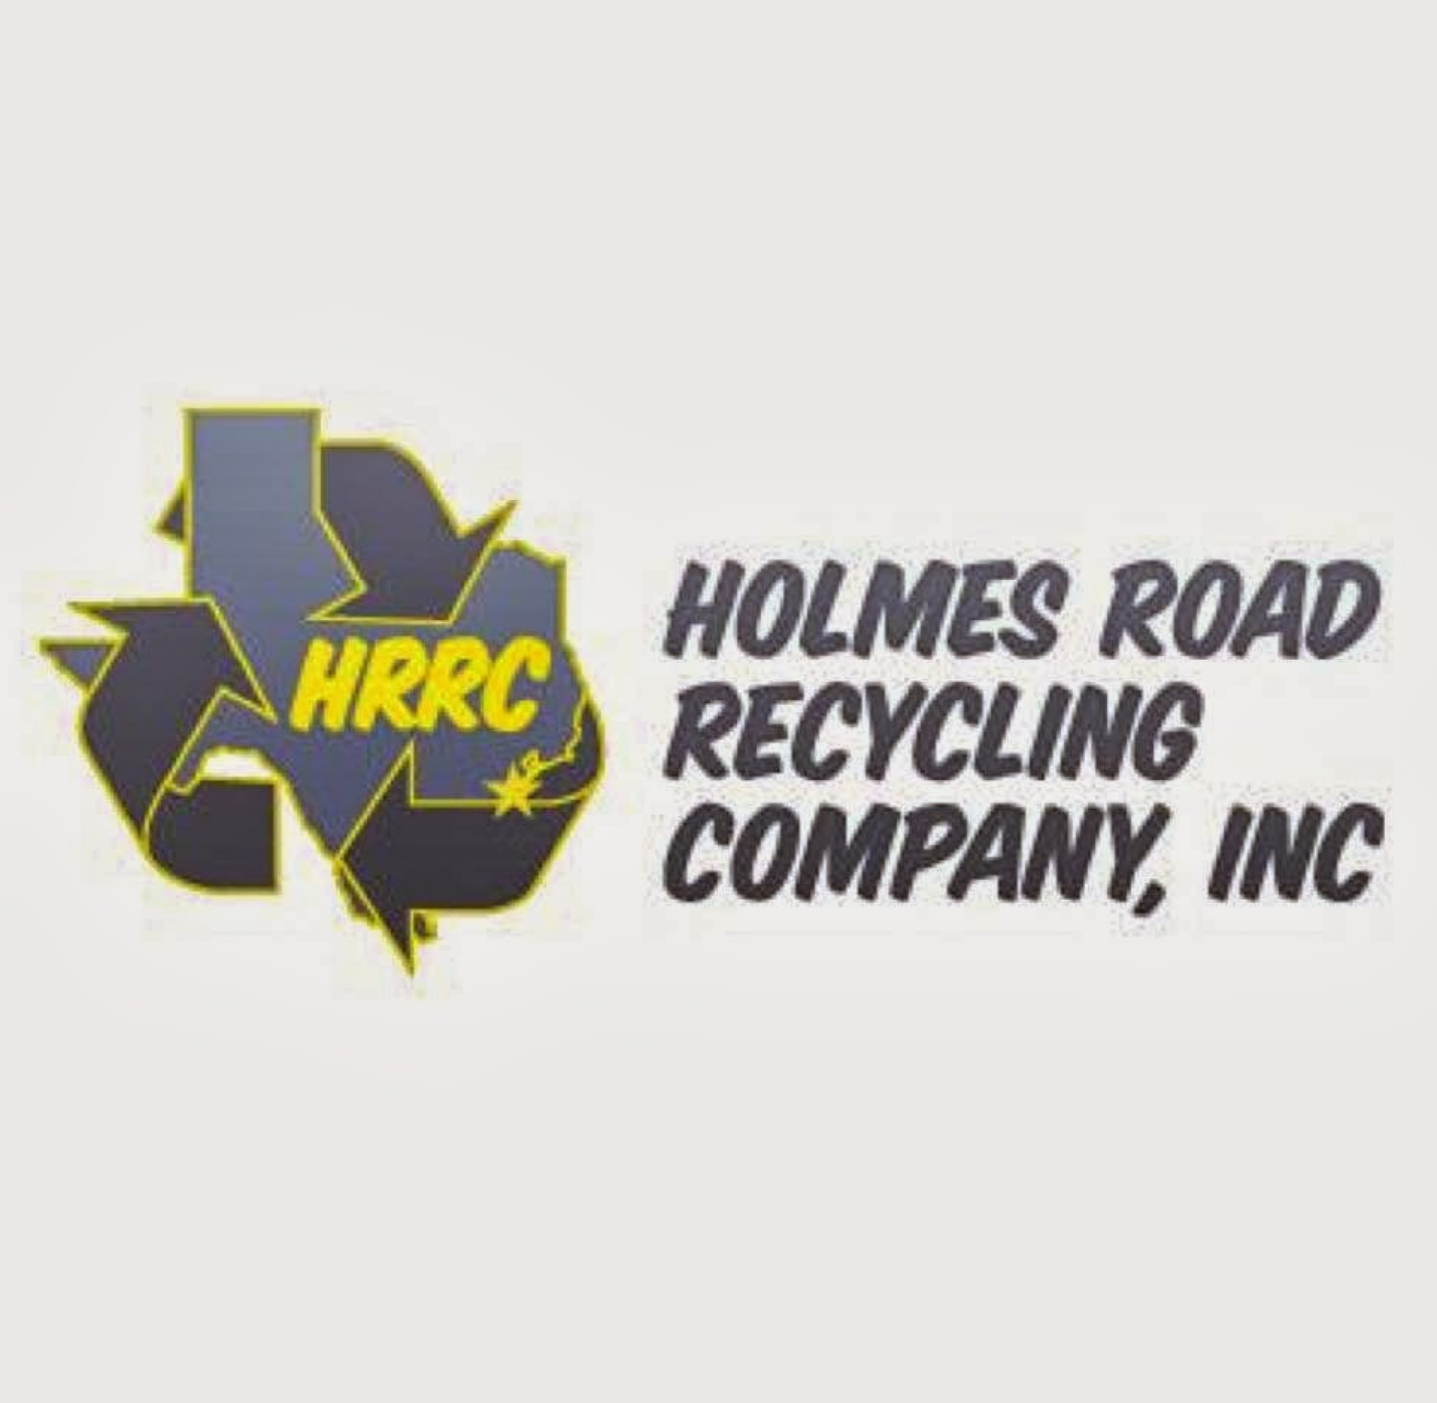 Holmes Road Recycling Company,Inc